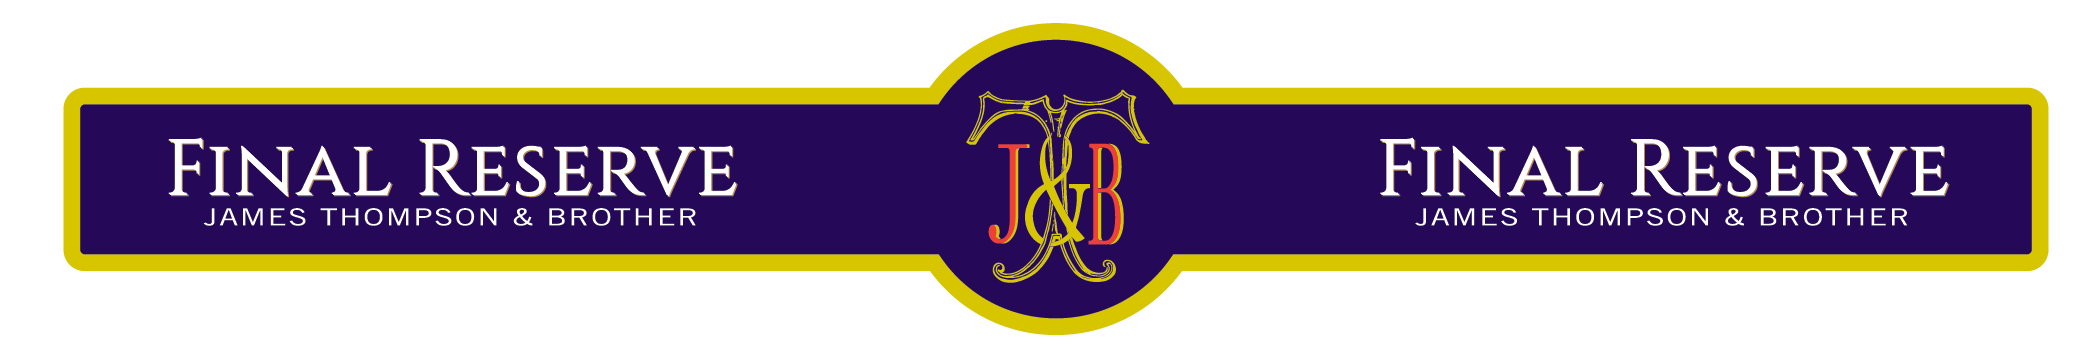 JT&B Final Reserve Seal Label Art1-01.png